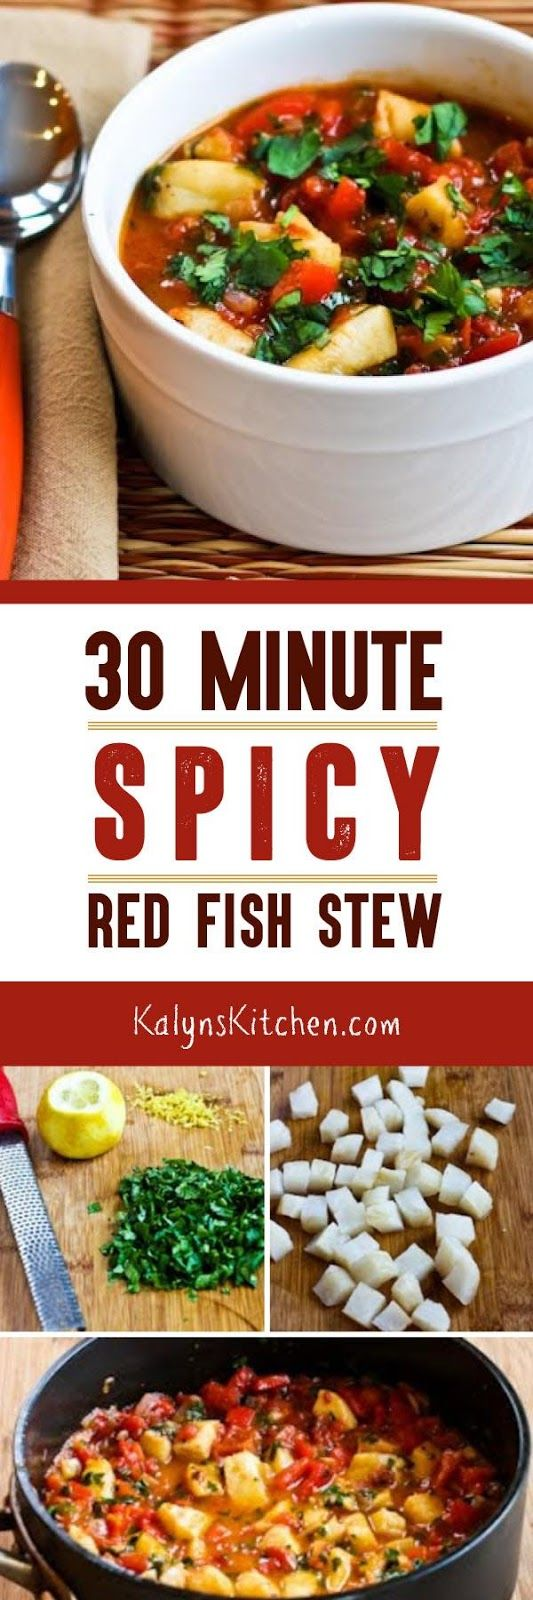 spicy slaw spicy red fish stew recipes dishmaps spicy red fish stew ...